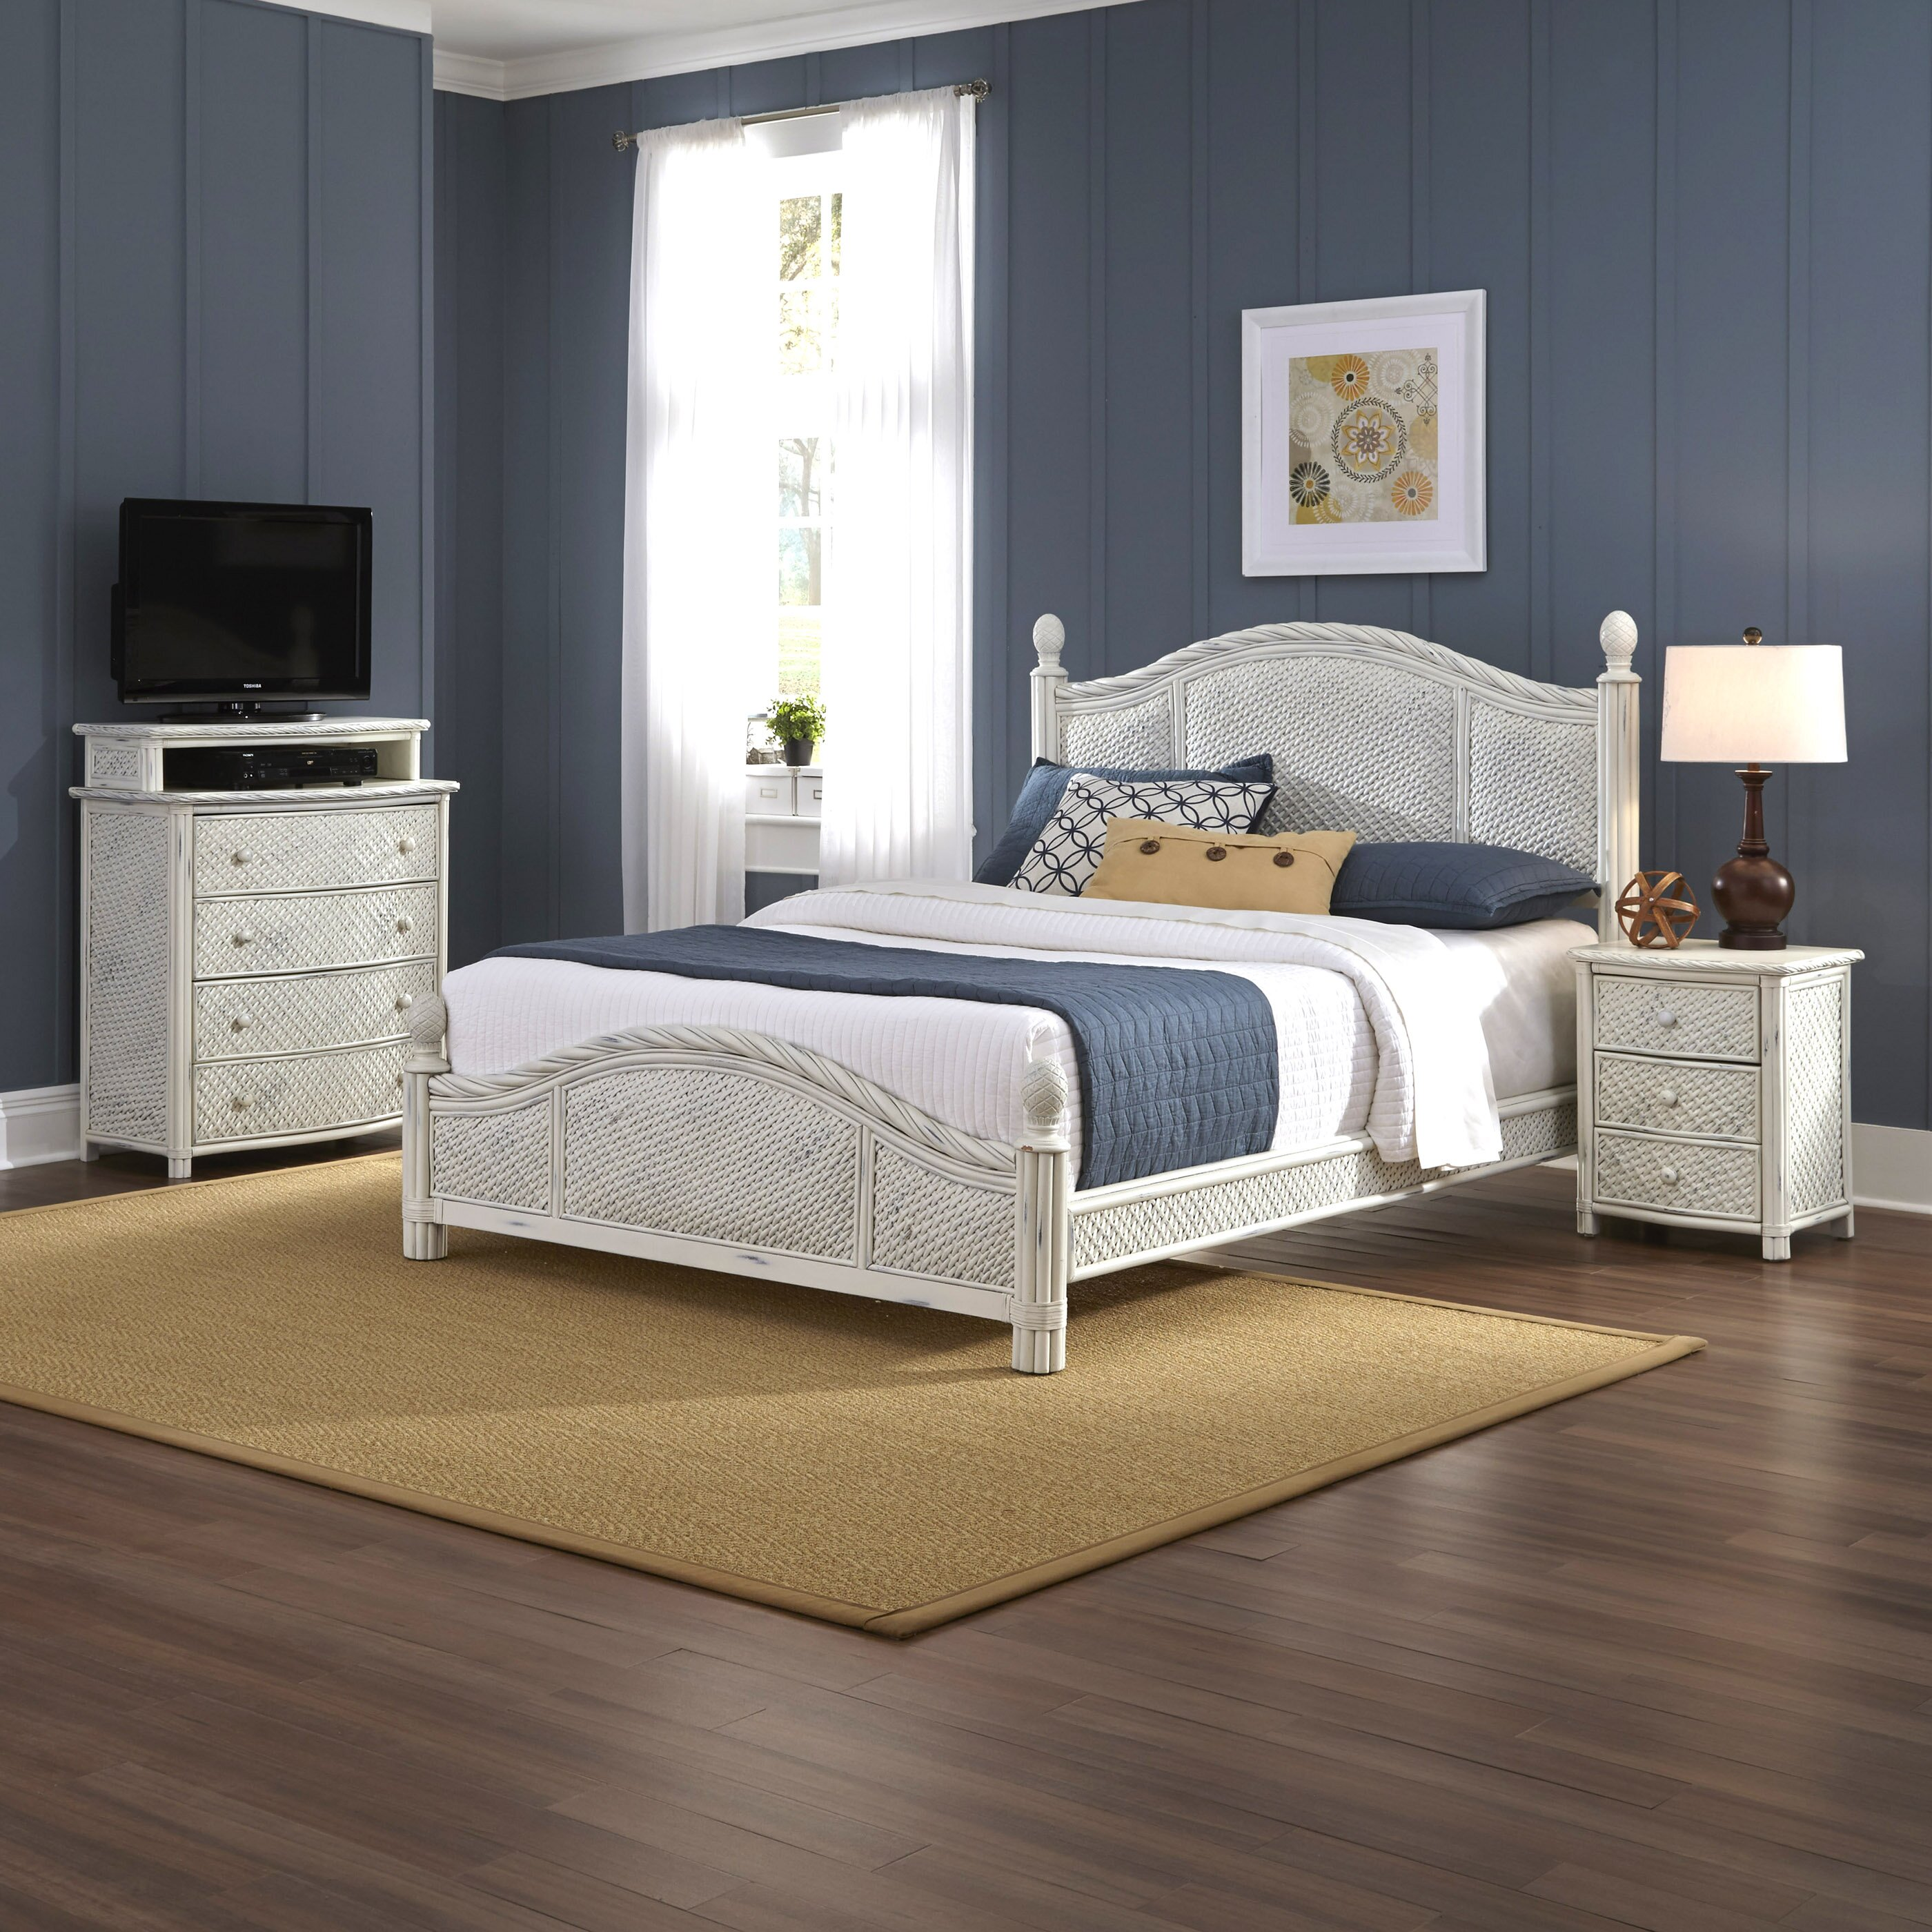 Bay isle home oliver panel 3 piece bedroom set reviews for Bedroom 3 piece sets